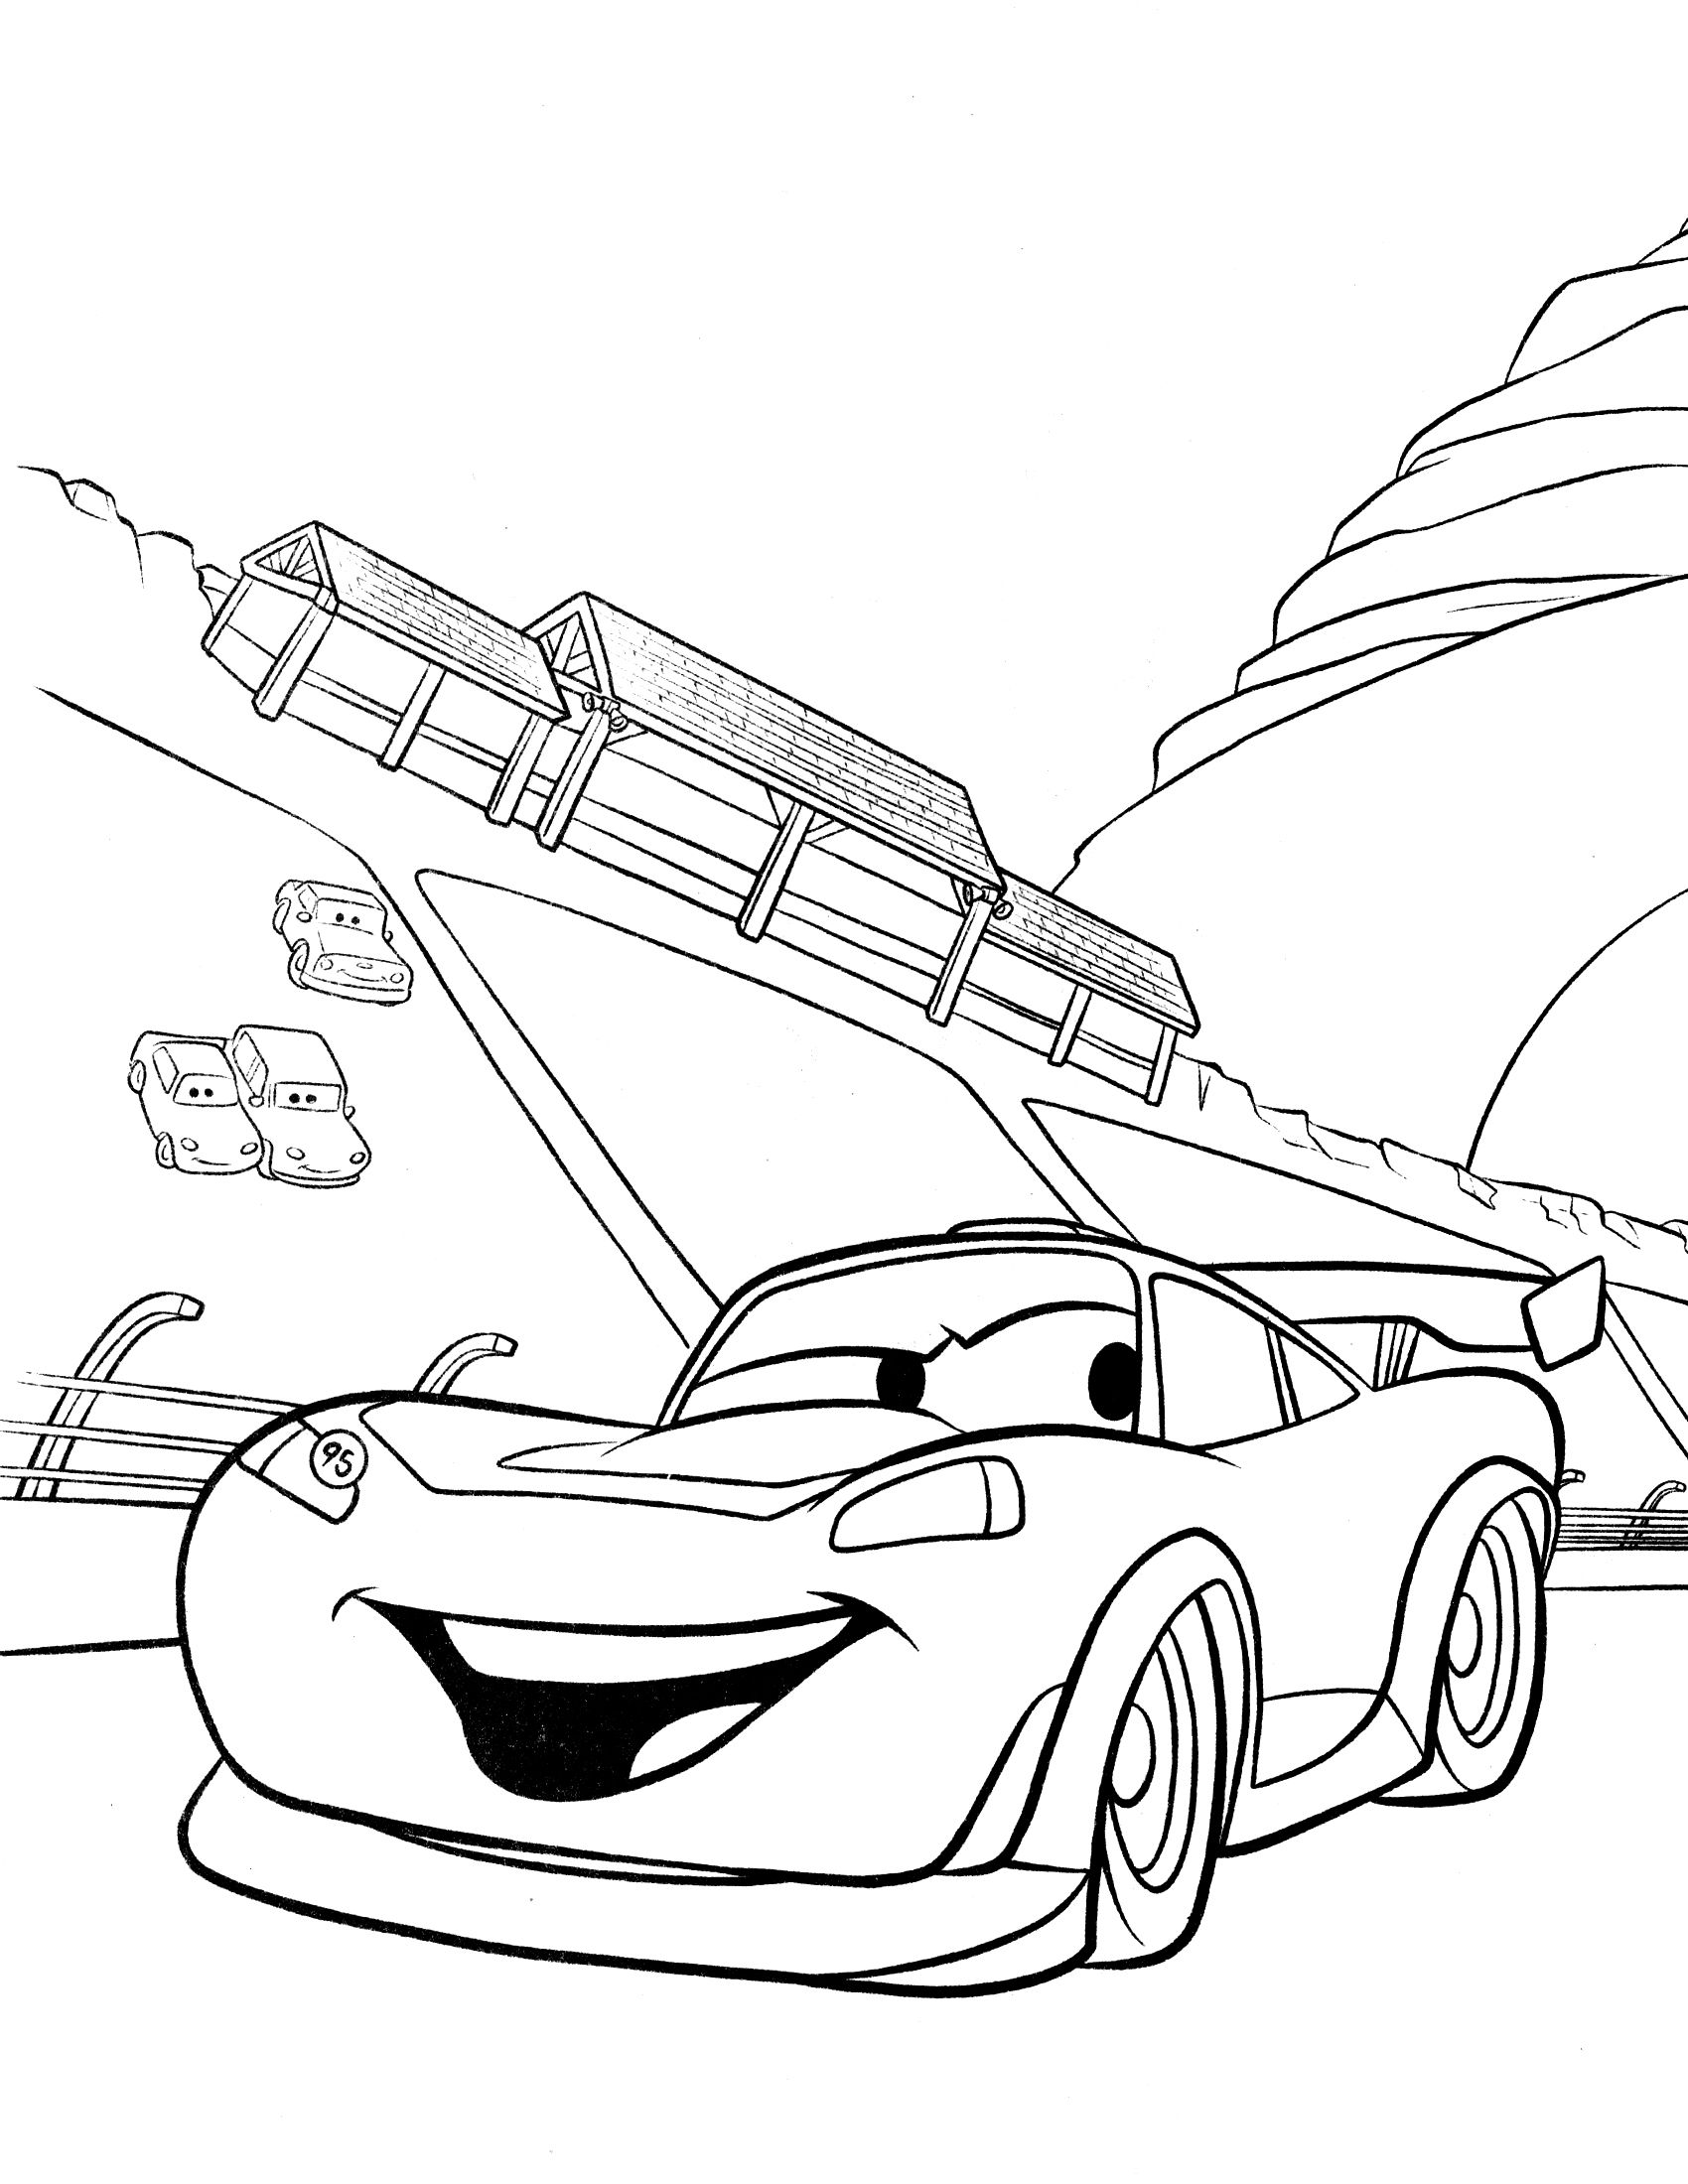 Disney Cars Coloring Pages Bing Images Cars Coloring Pages Truck Coloring Pages Race Car Coloring Pages [ 2200 x 1700 Pixel ]